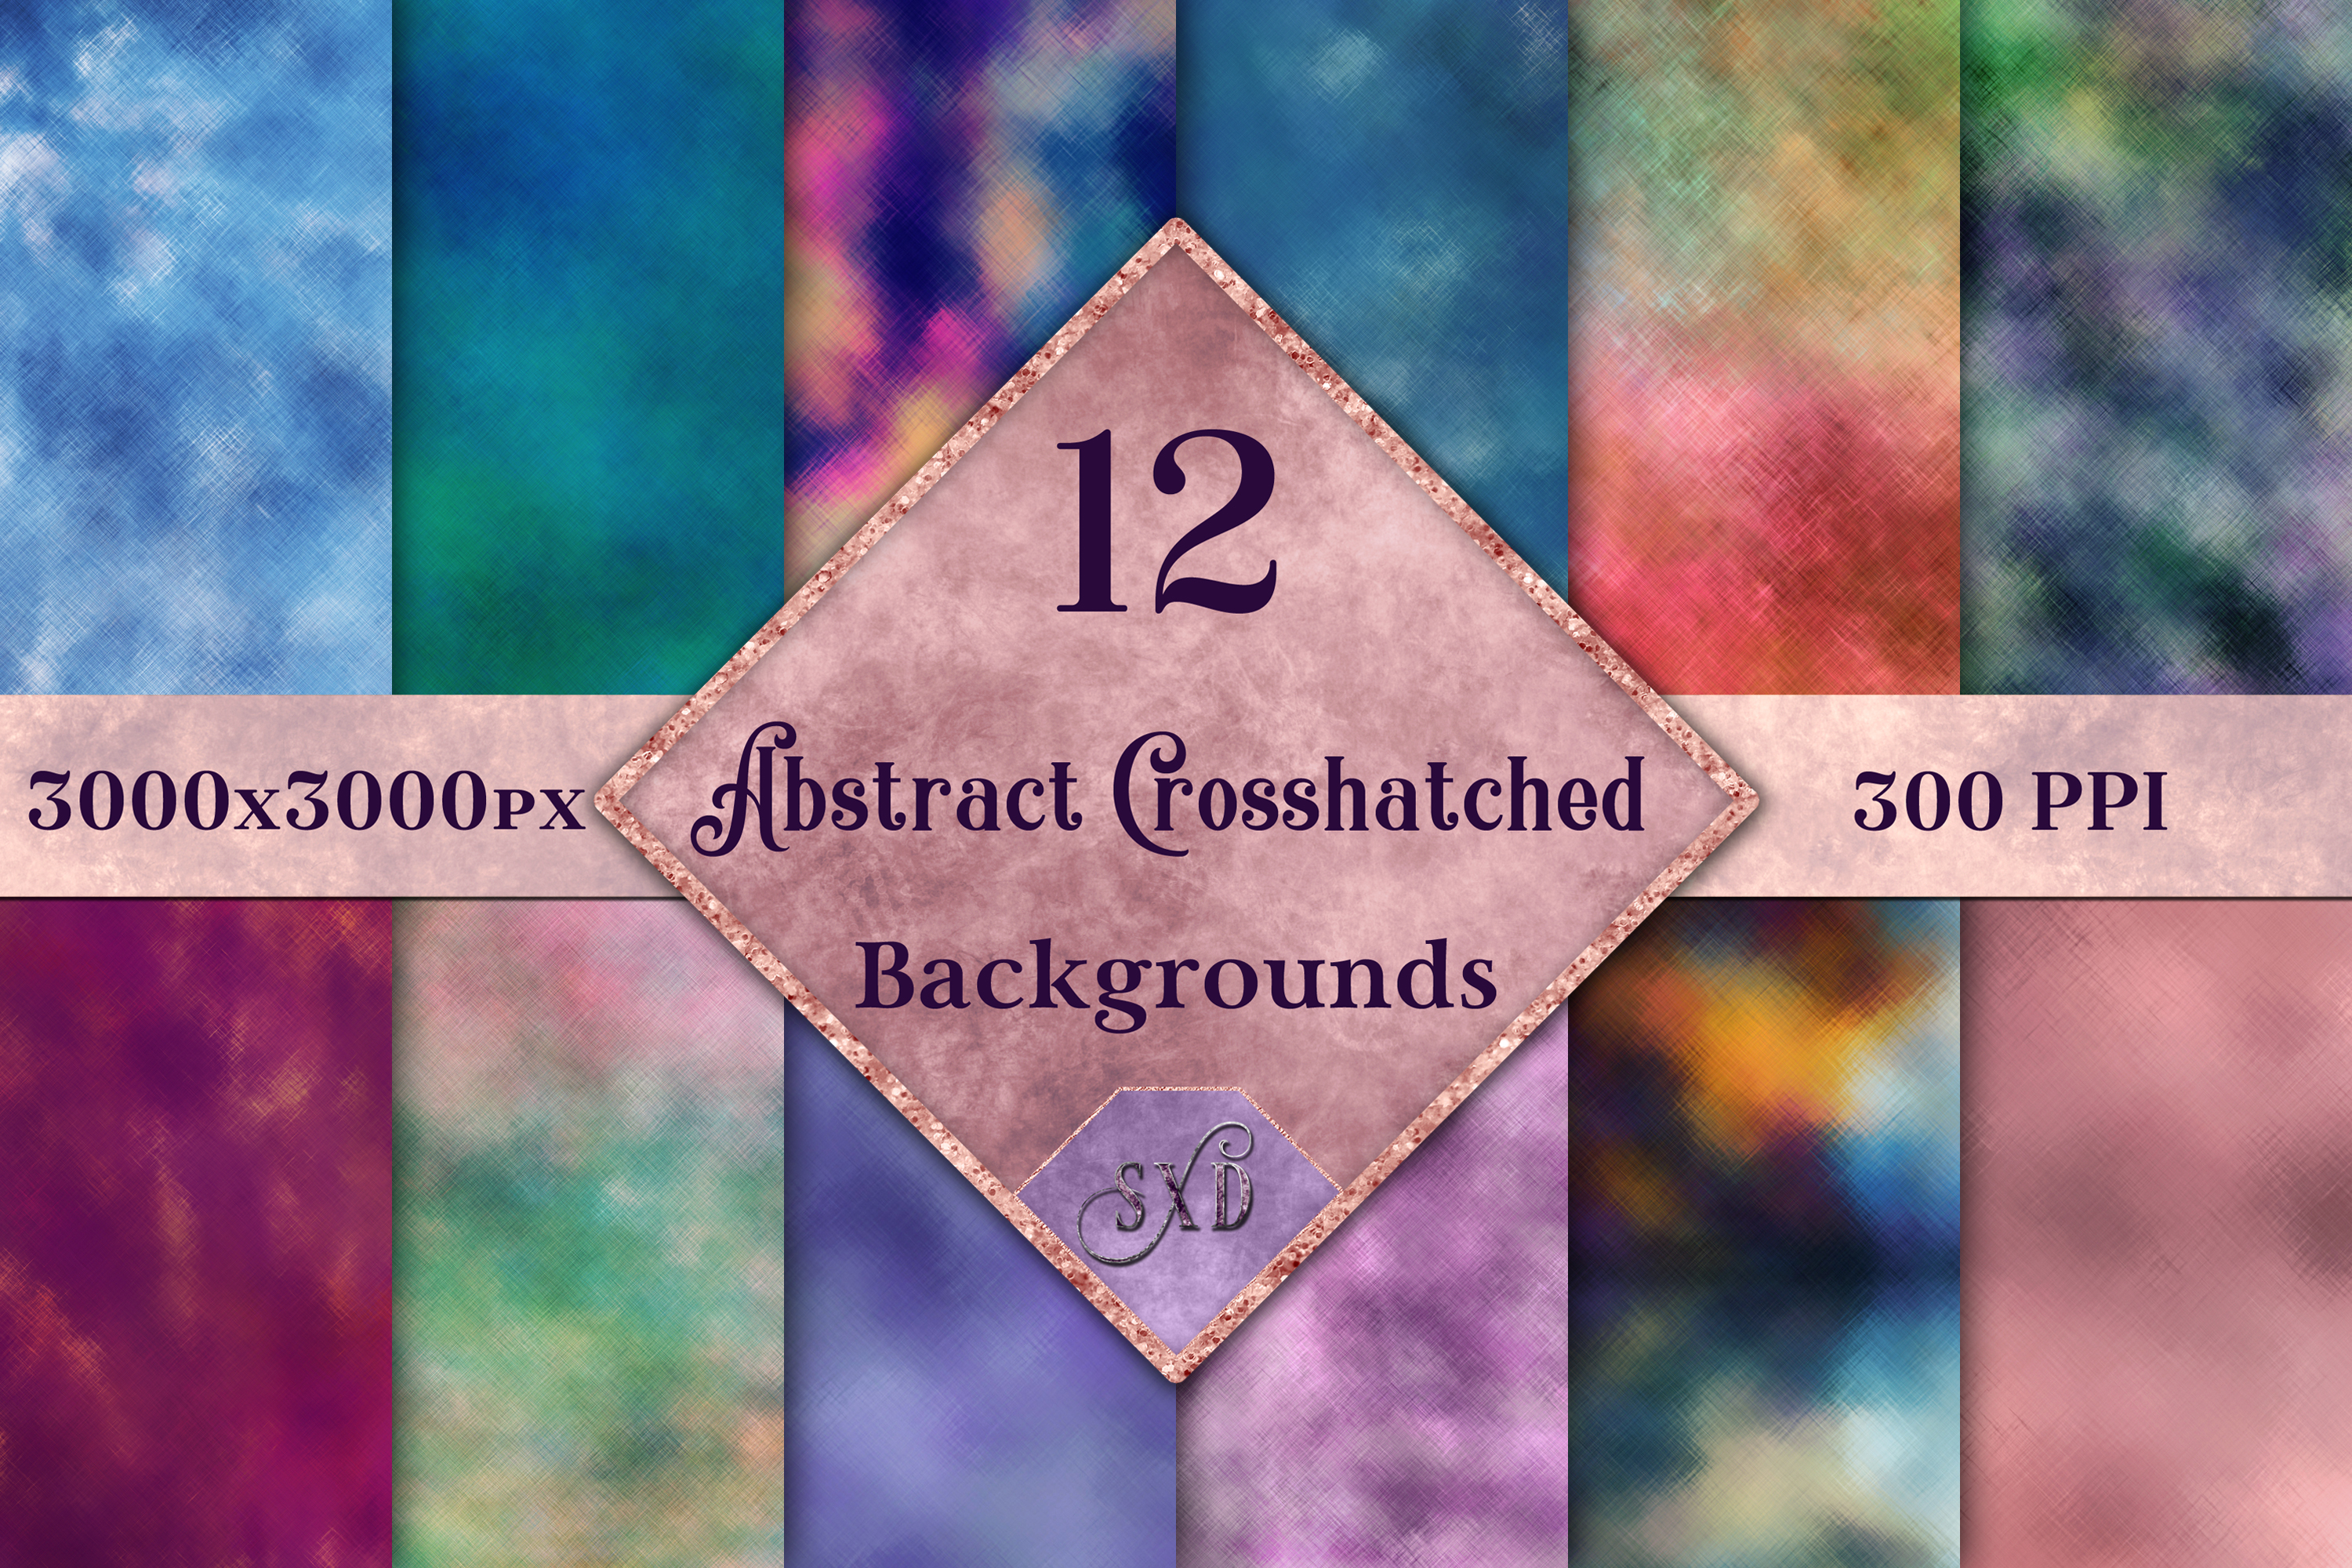 Abstract Crosshatched Backgrounds - 12 Image Textures Set example image 1